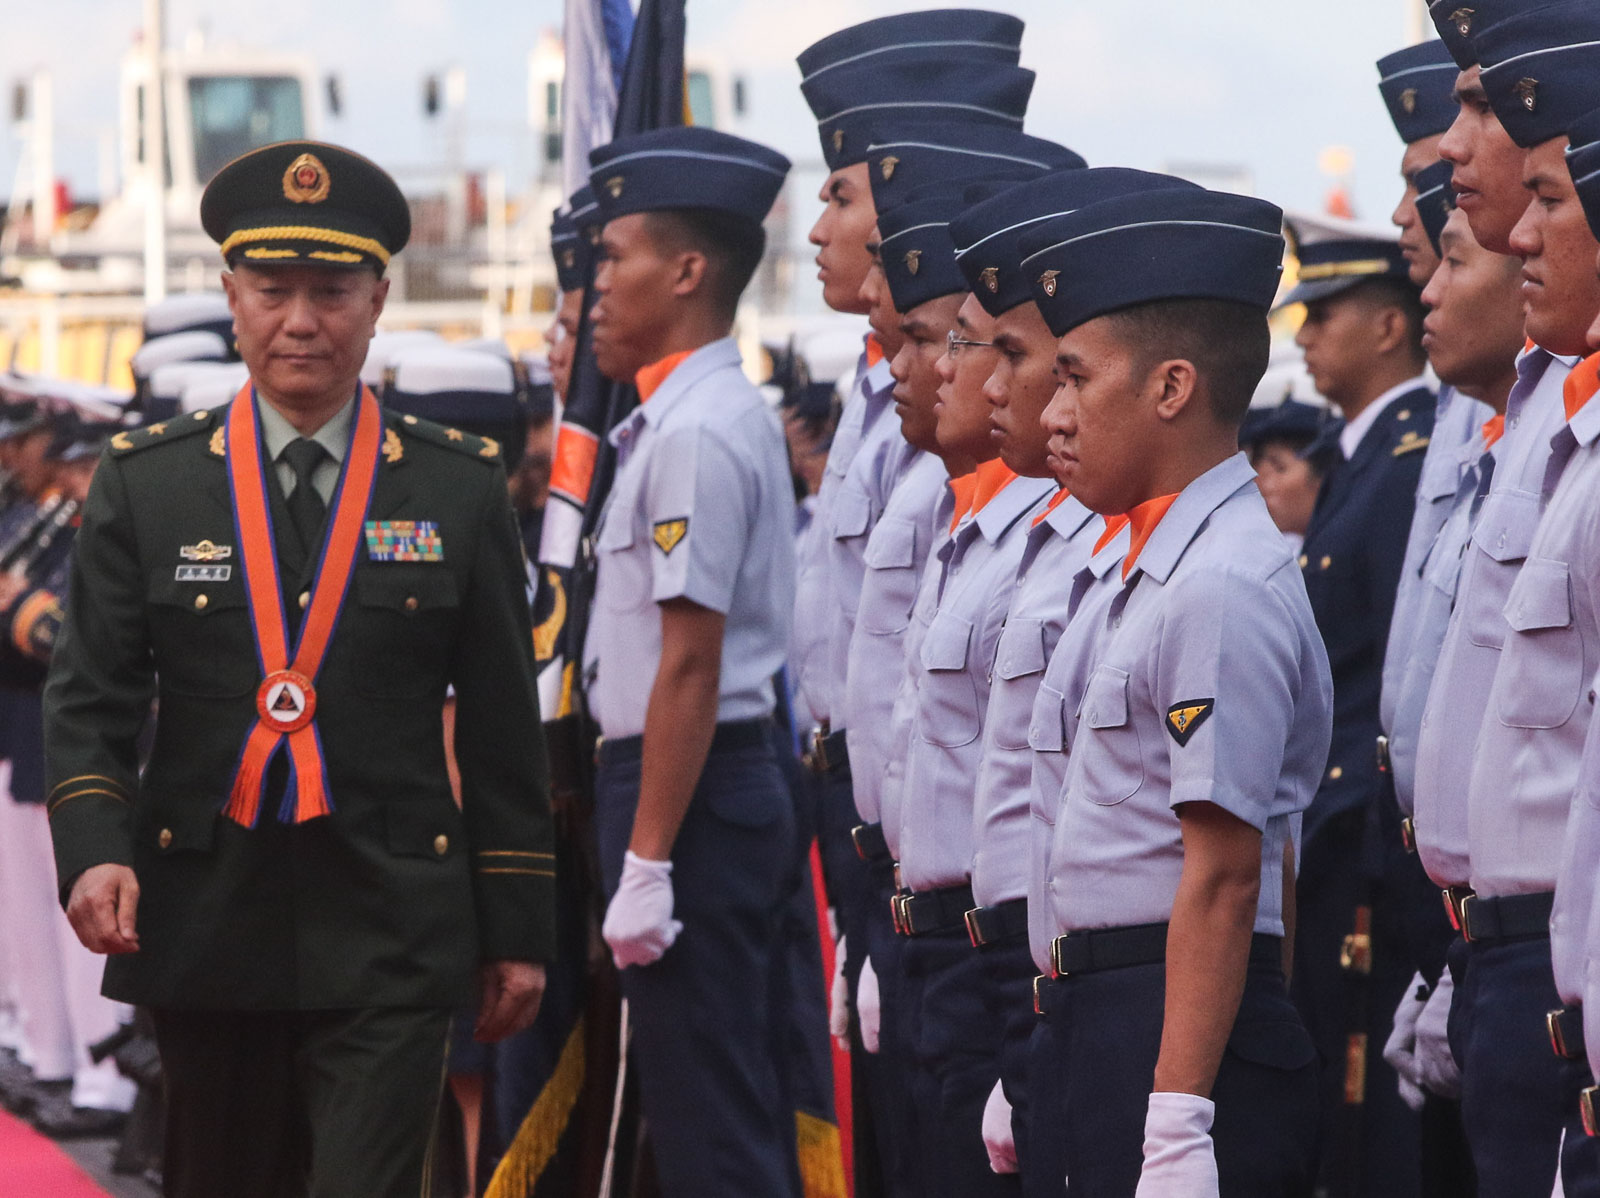 WELCOMED. China Coast Guard Major General Wang Zhongcai during the arrival honors at Philippine Coast Guard Headquarters in Manila on January 14, 2020. Photo by KD Madrilejos/Rappler